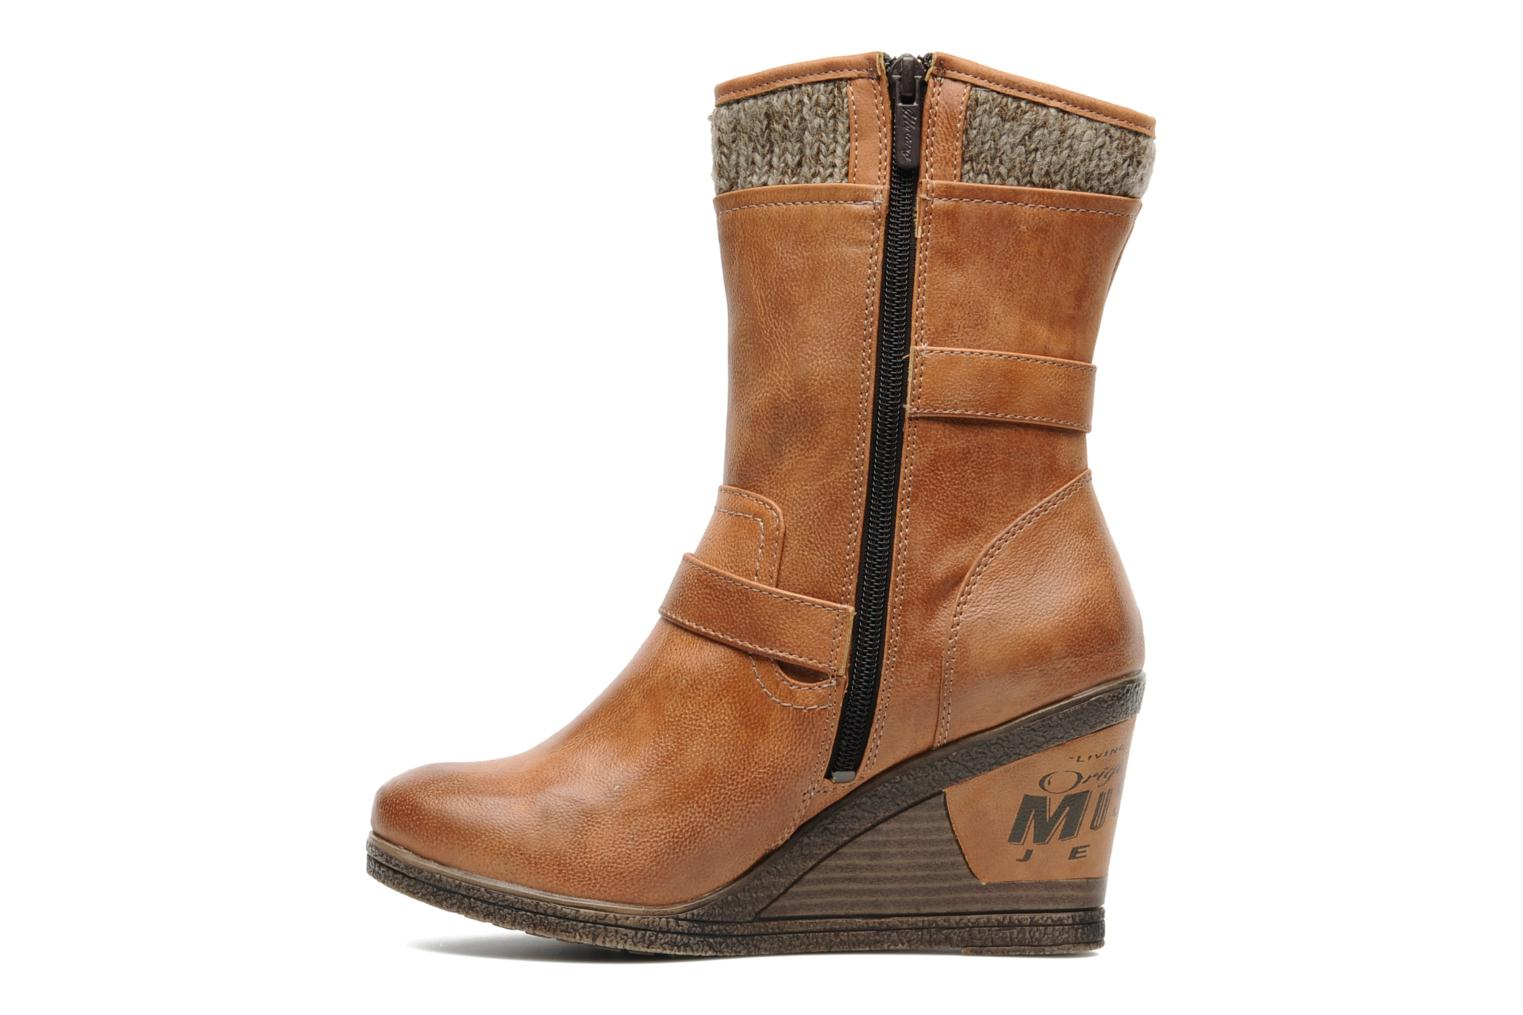 Mustang shoes Berta Ankle boots in Brown at Sarenza.co.uk ...